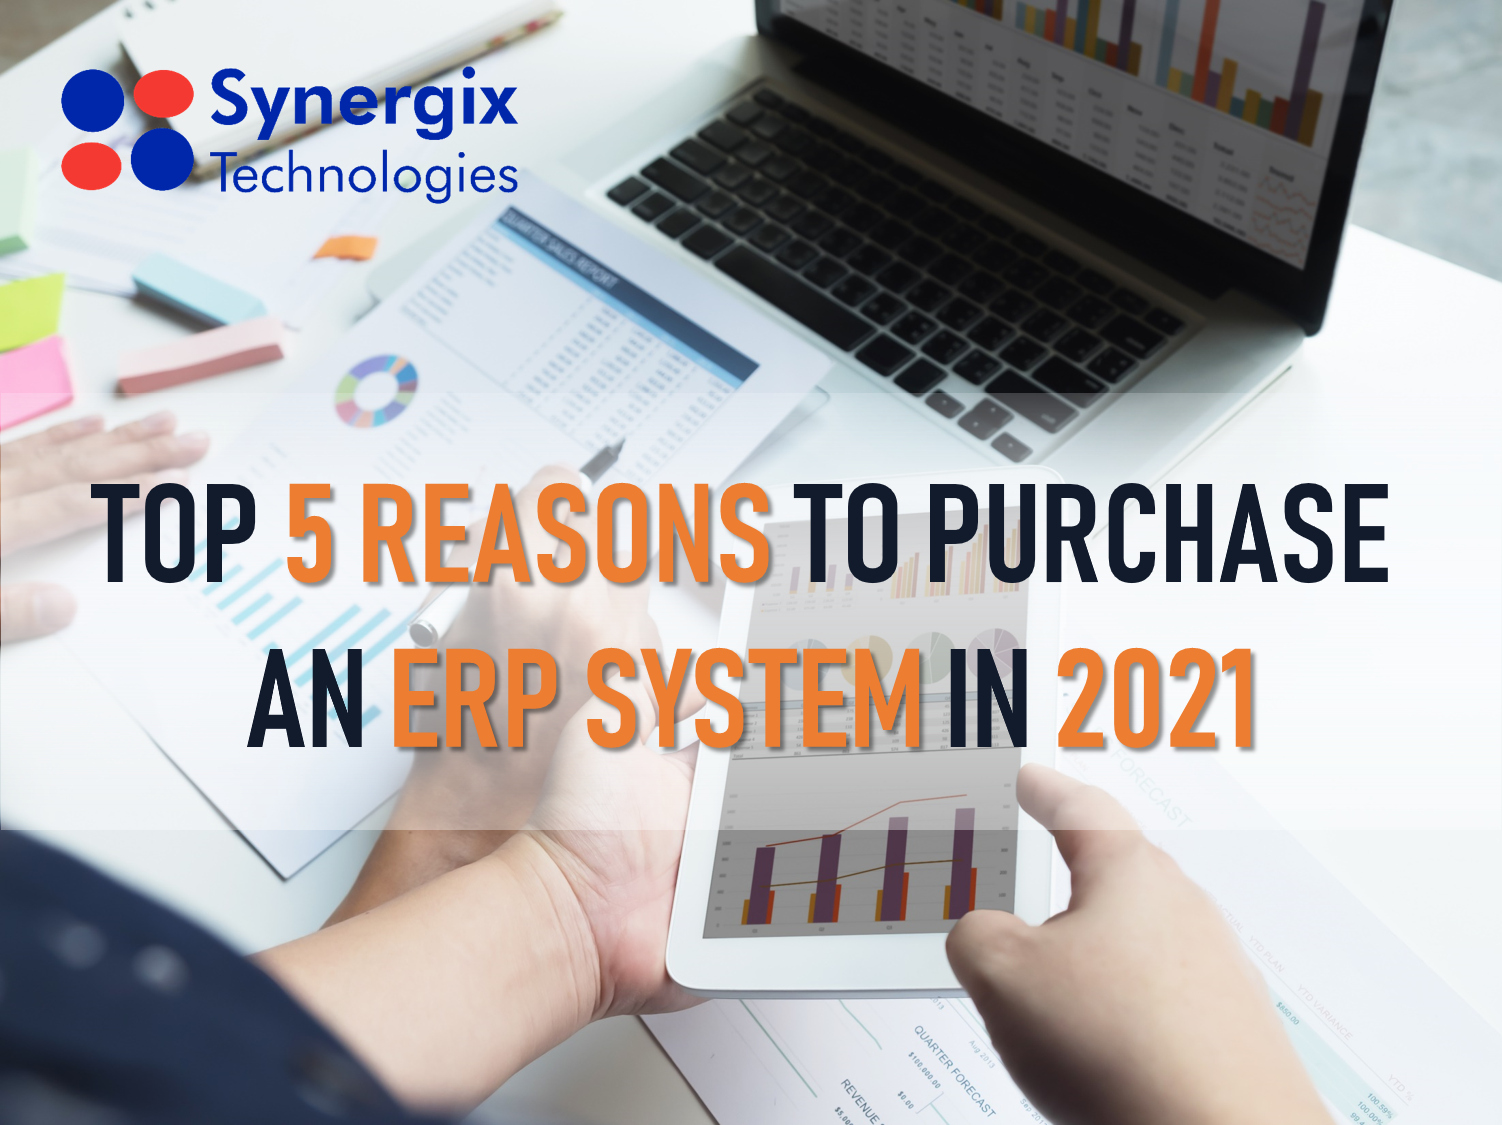 Top 5 Reasons To Purchase An ERP System